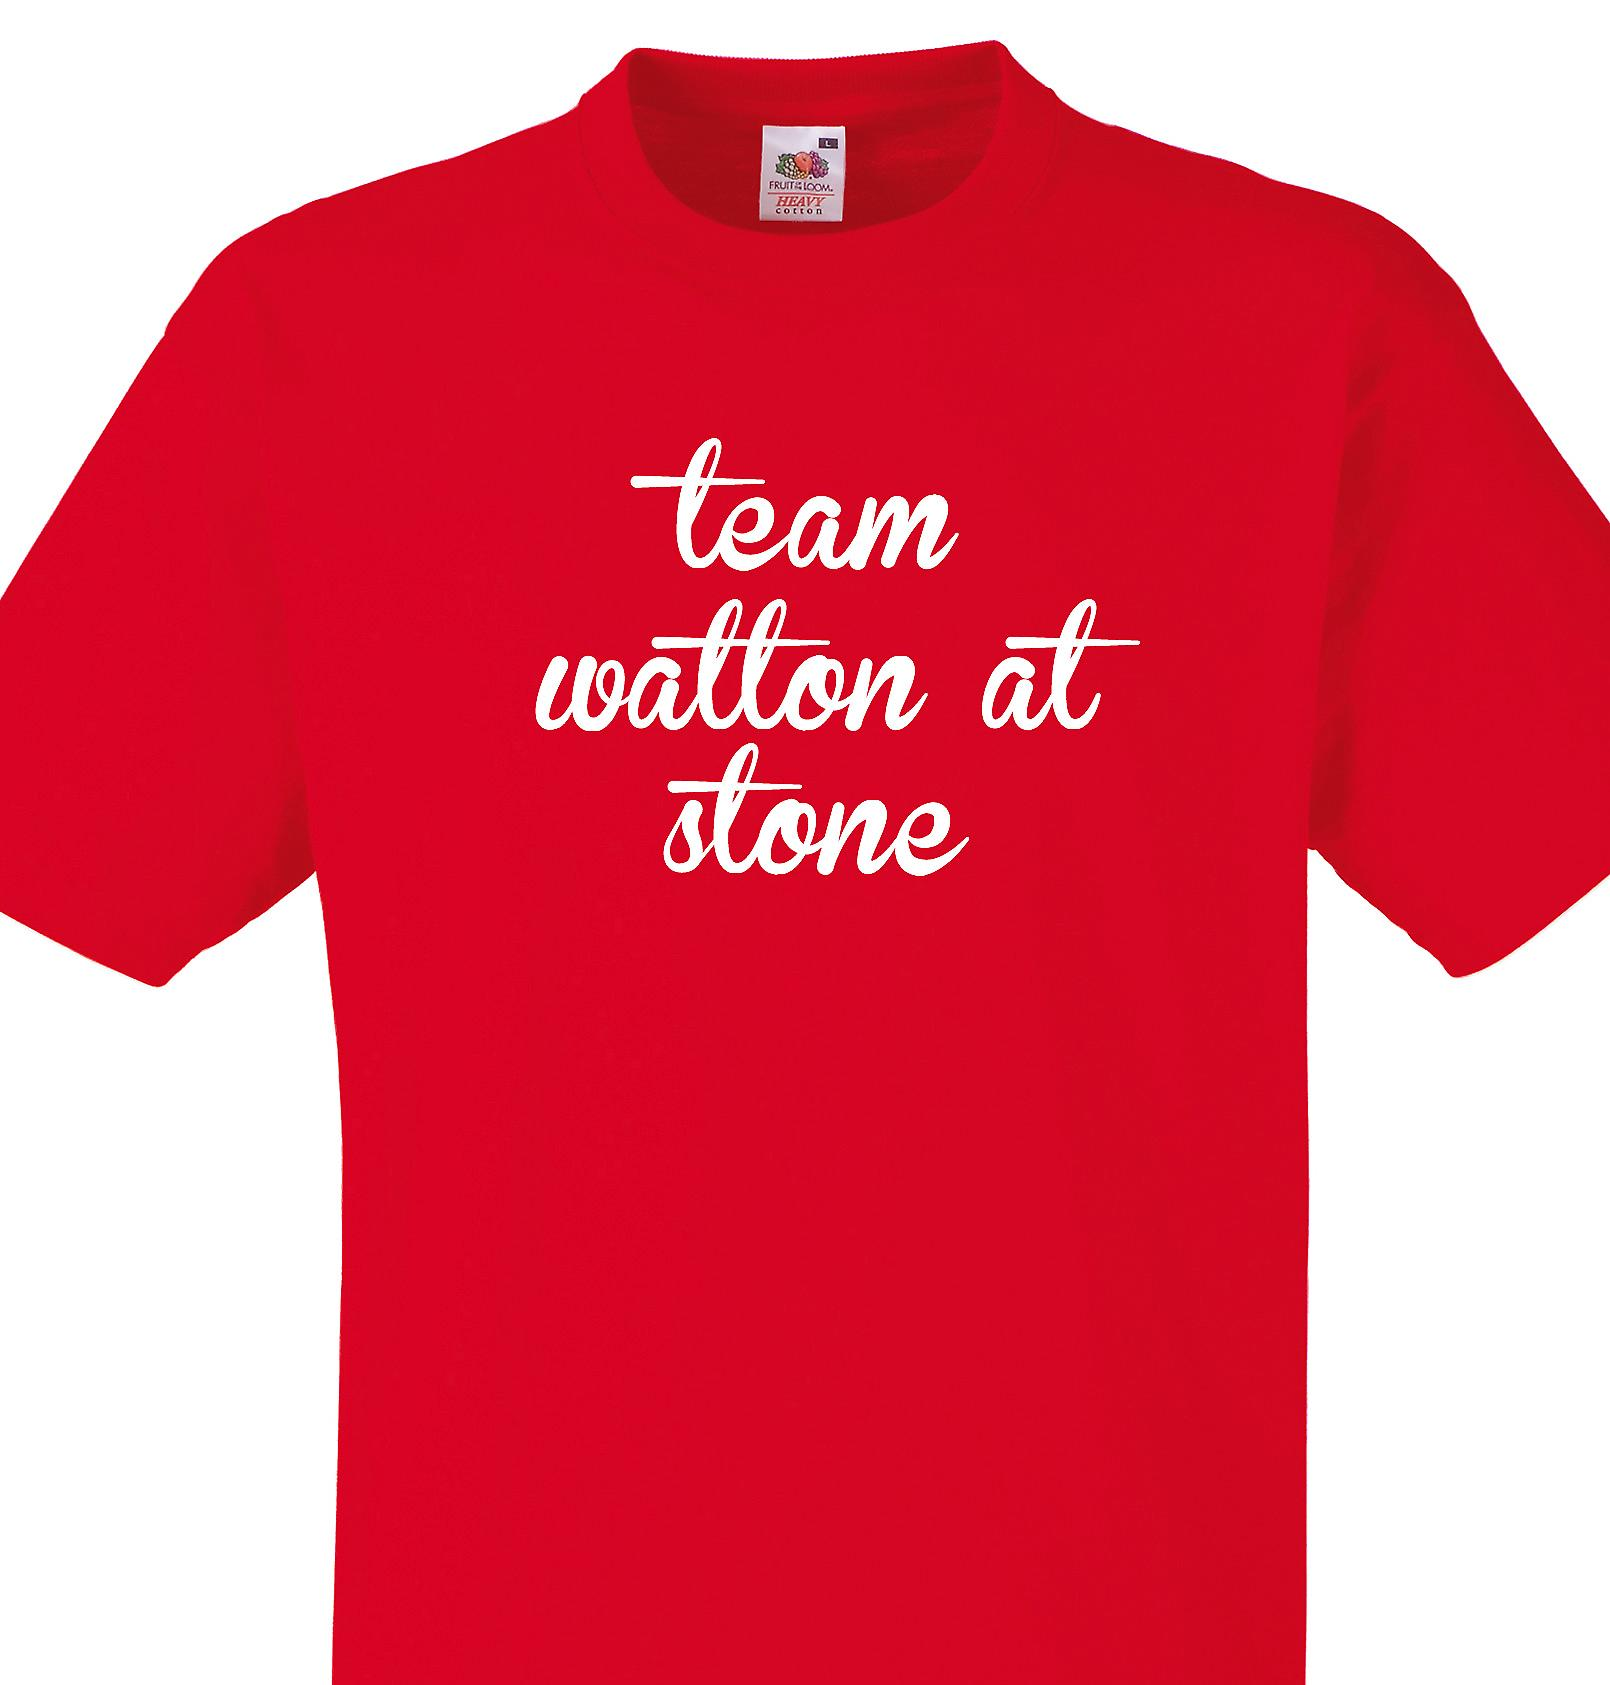 Team Watton at stone Red T shirt